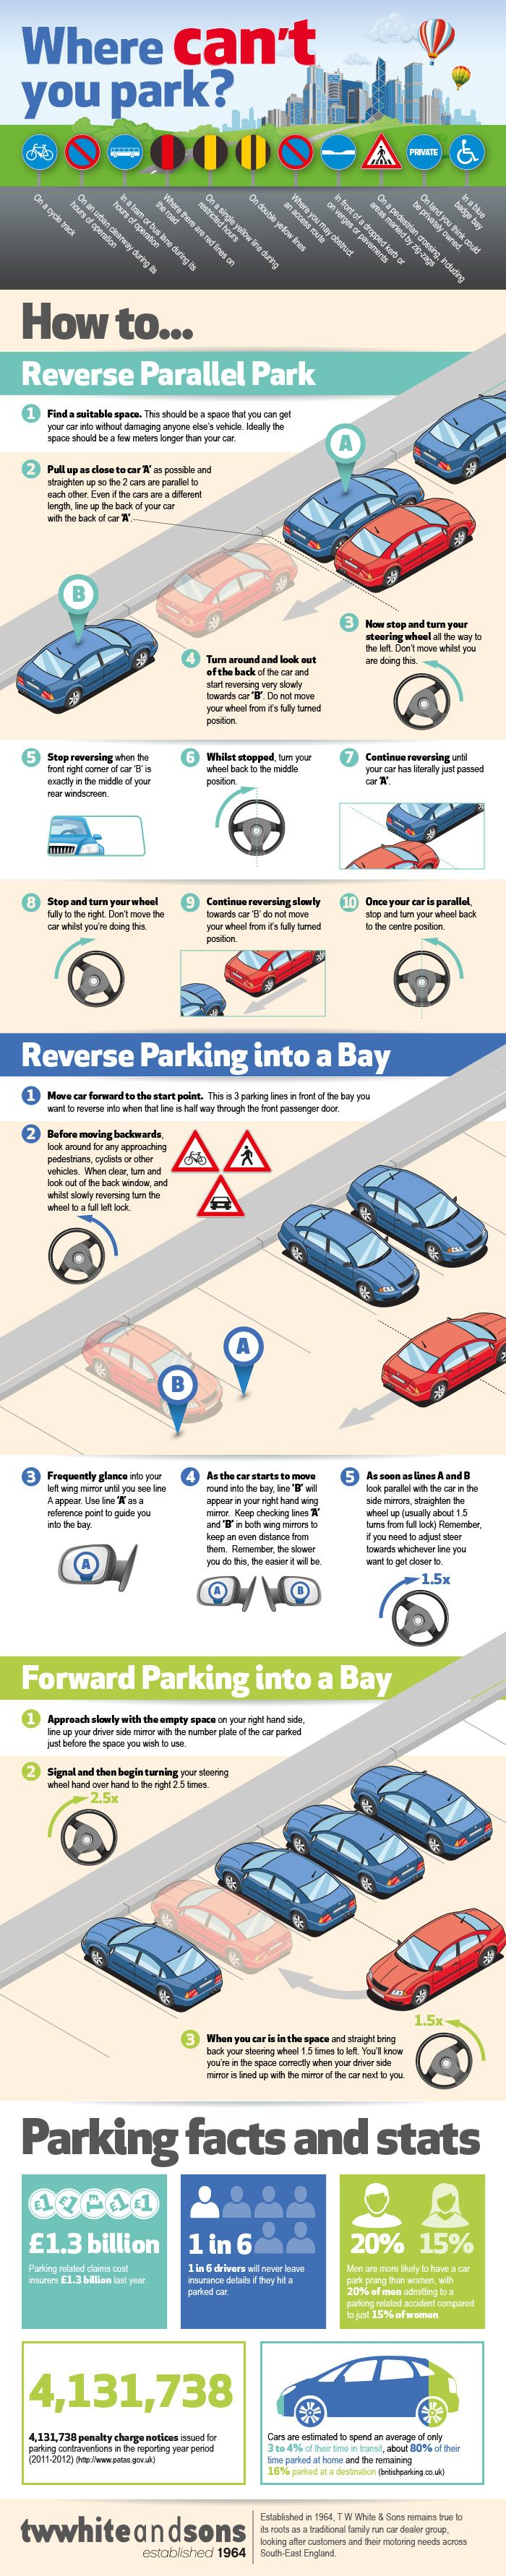 Parking Guide - How to Improve Your Parking Skills